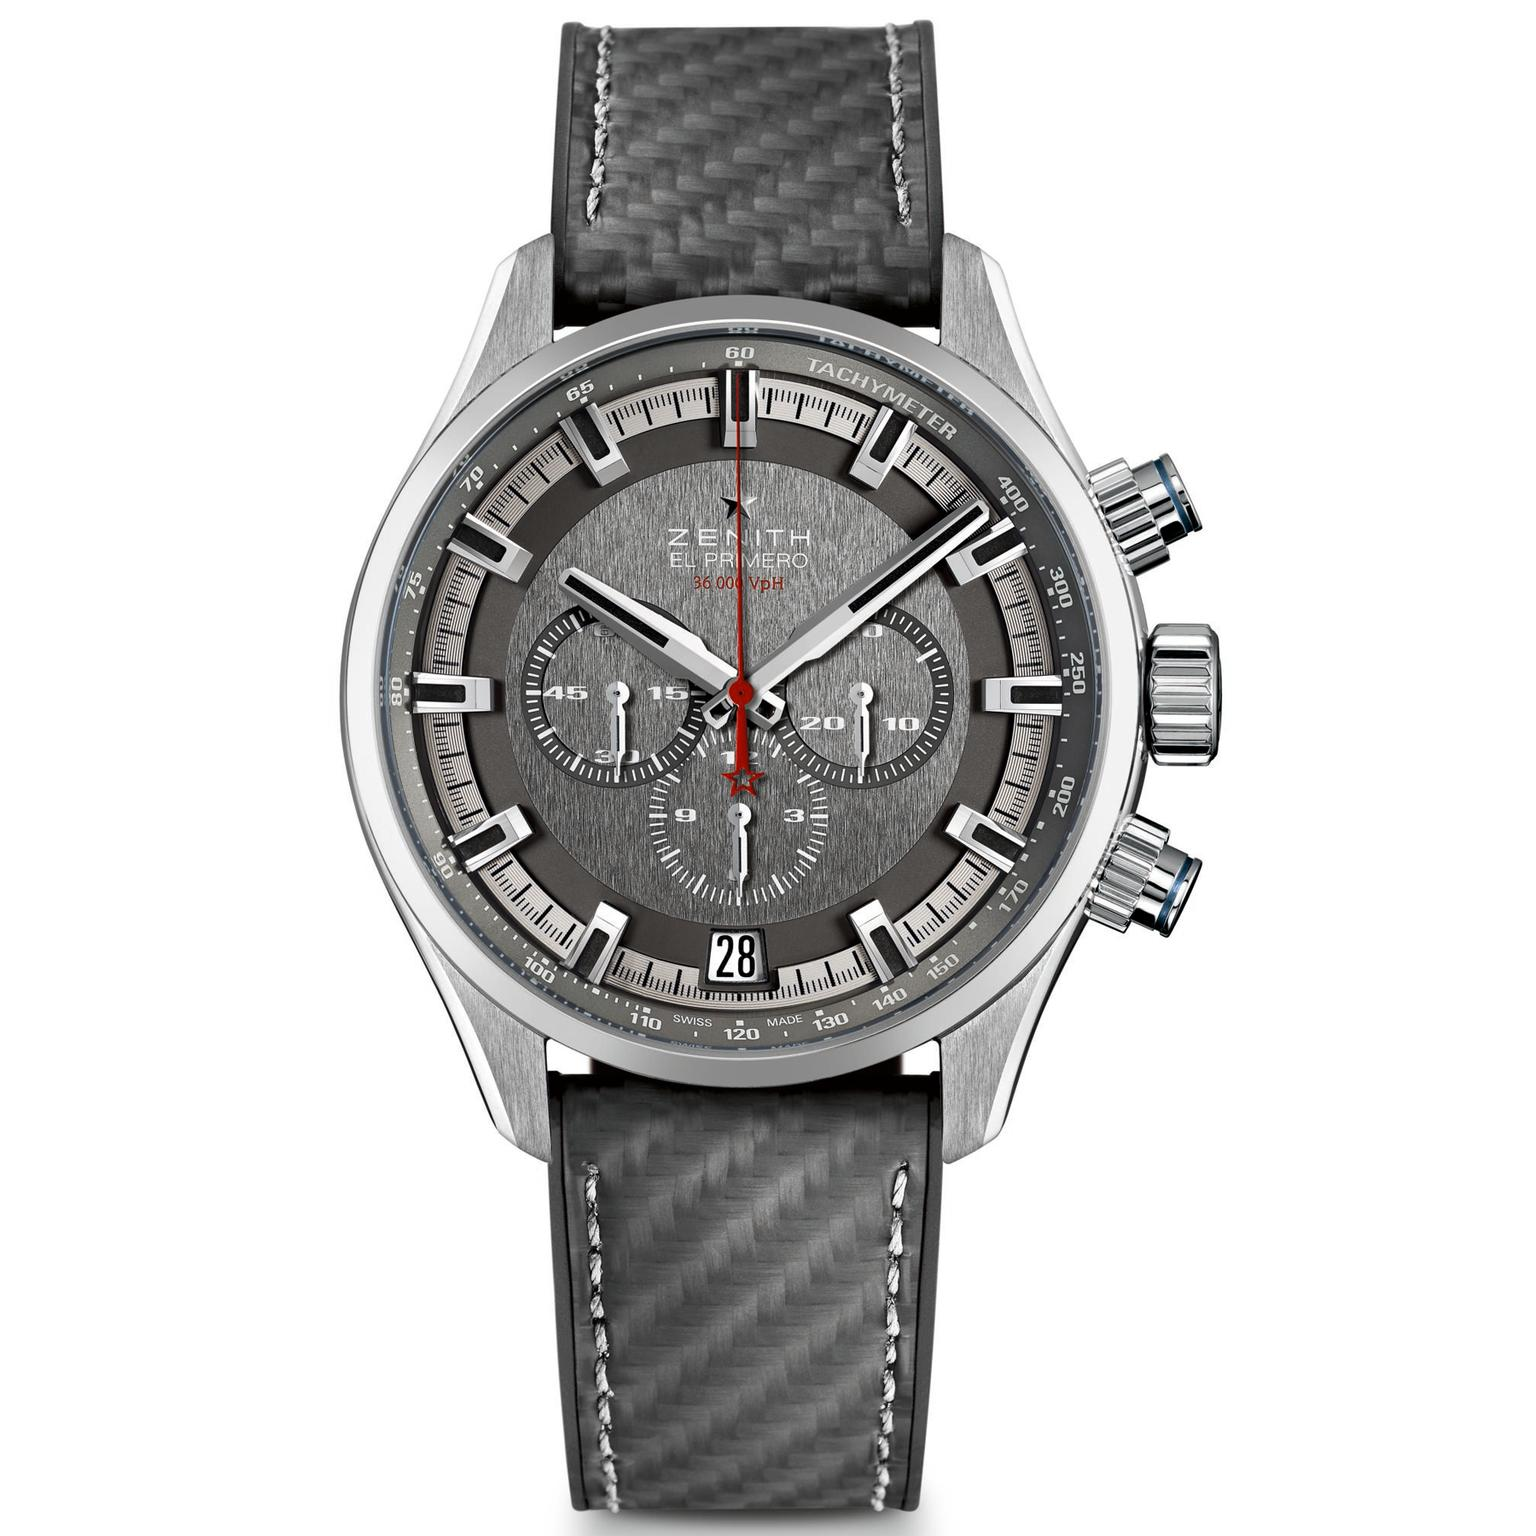 Zenith Chronomaster El Primero Sport Land Rover BAR Team Edition watch